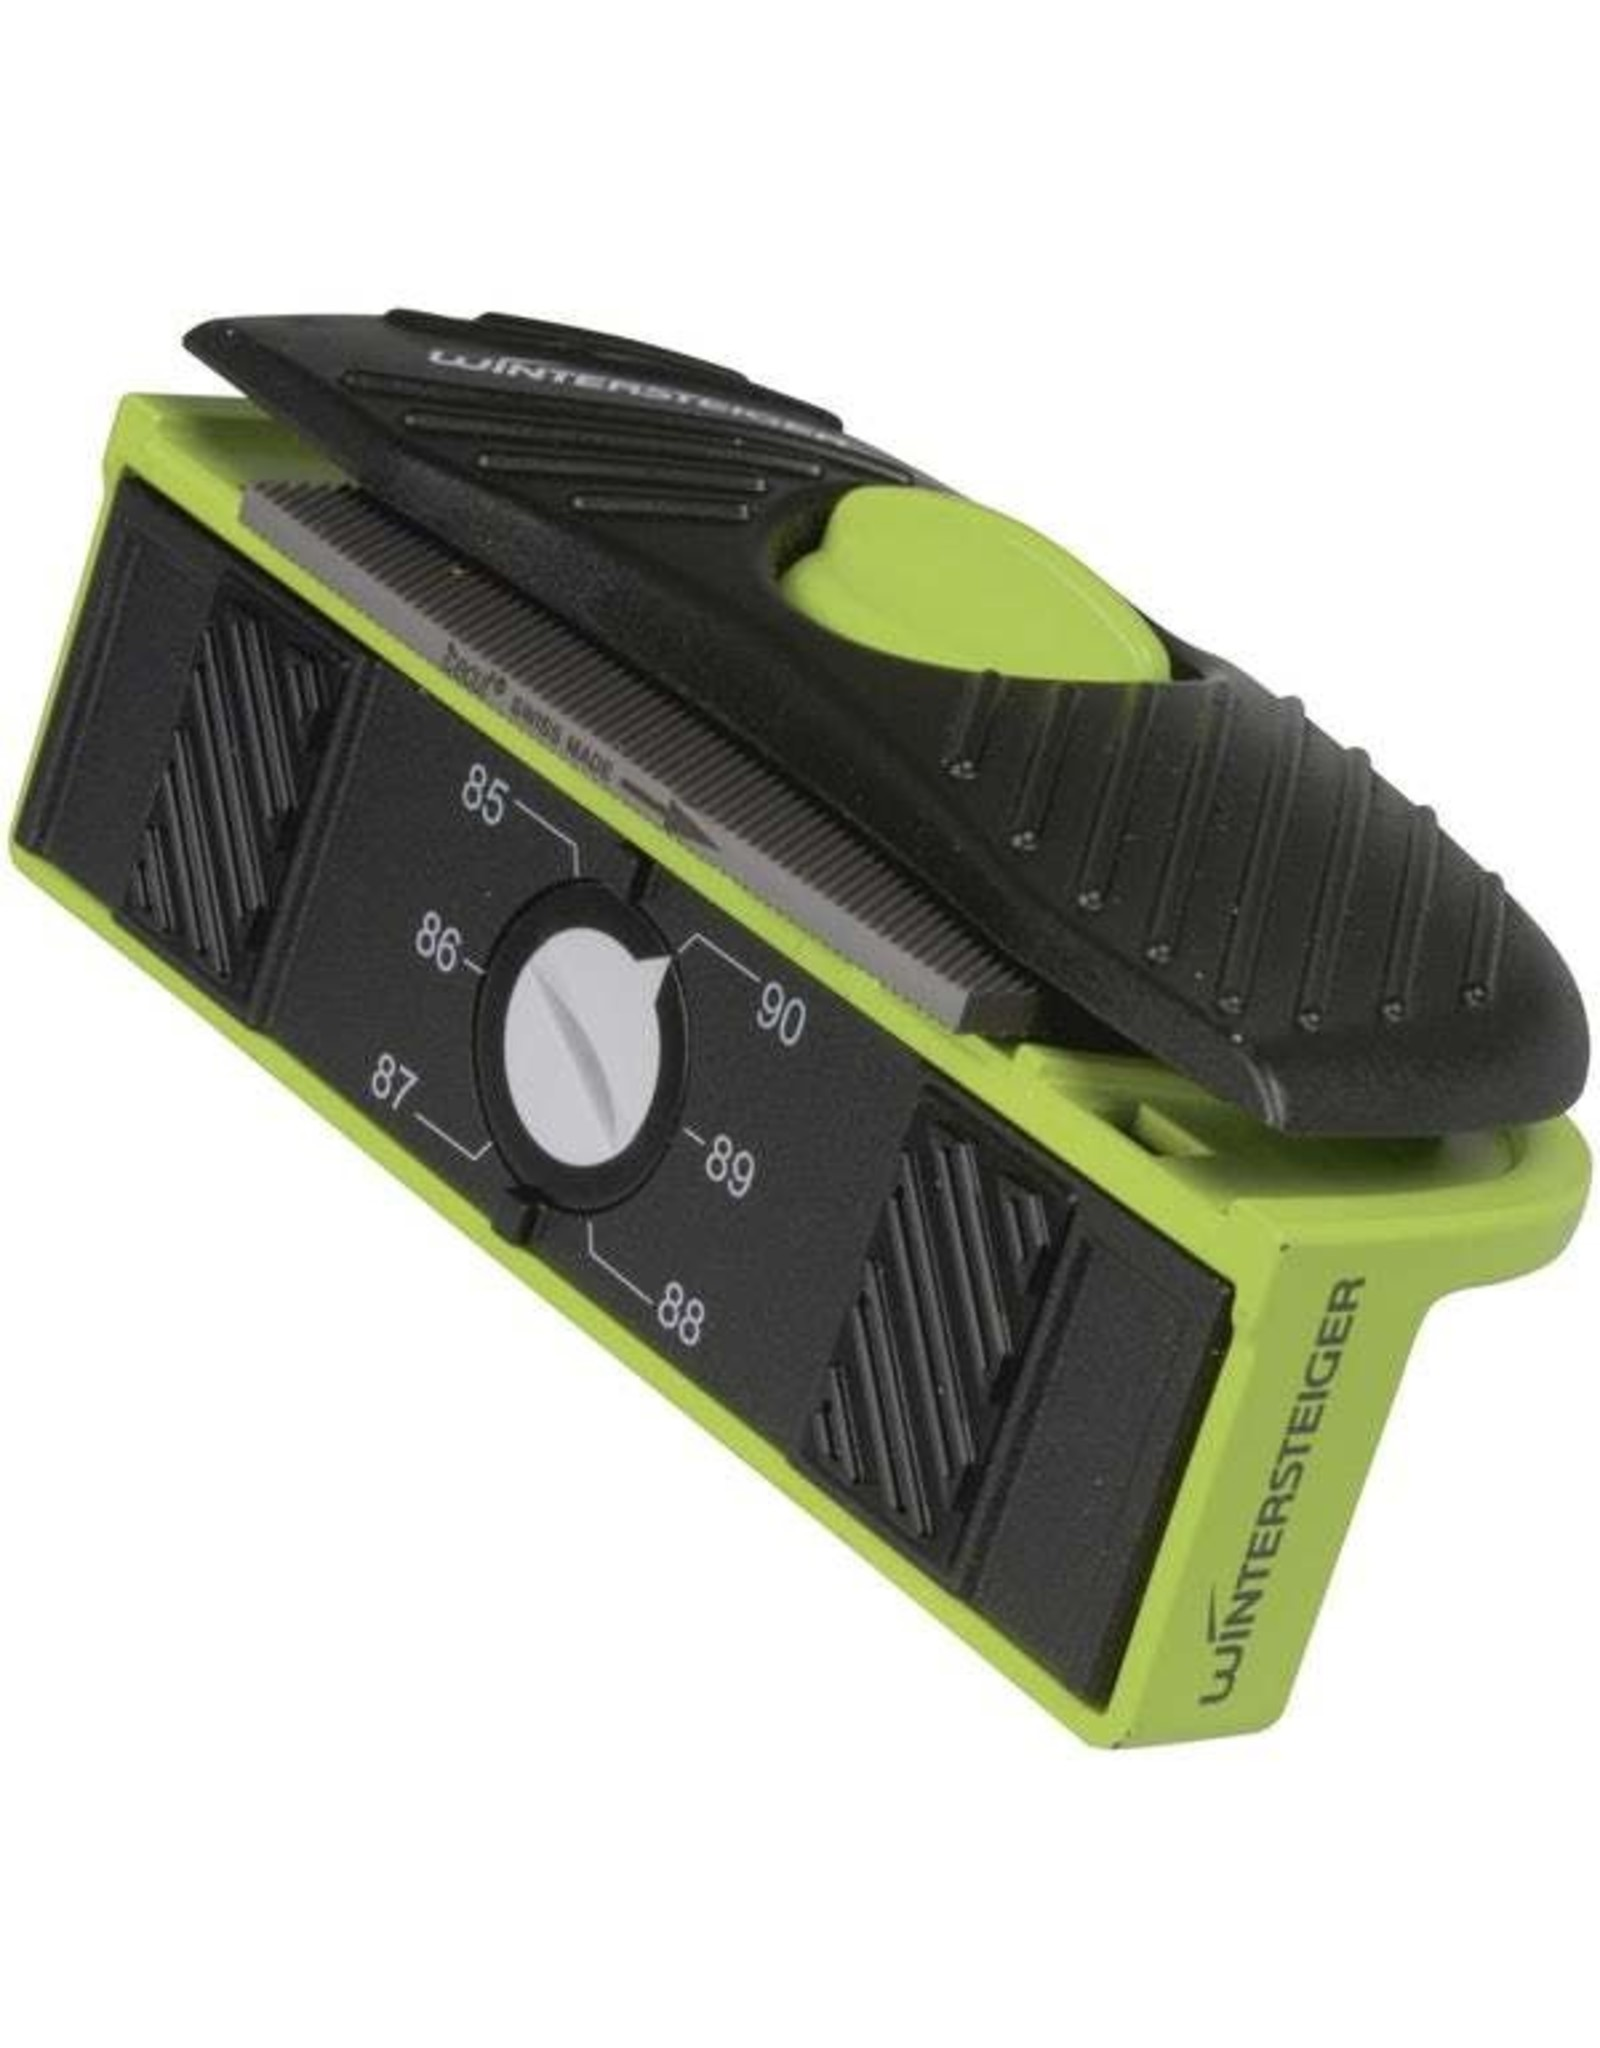 Wintersteiger Guide Pro sharper Race (Ski) Lime